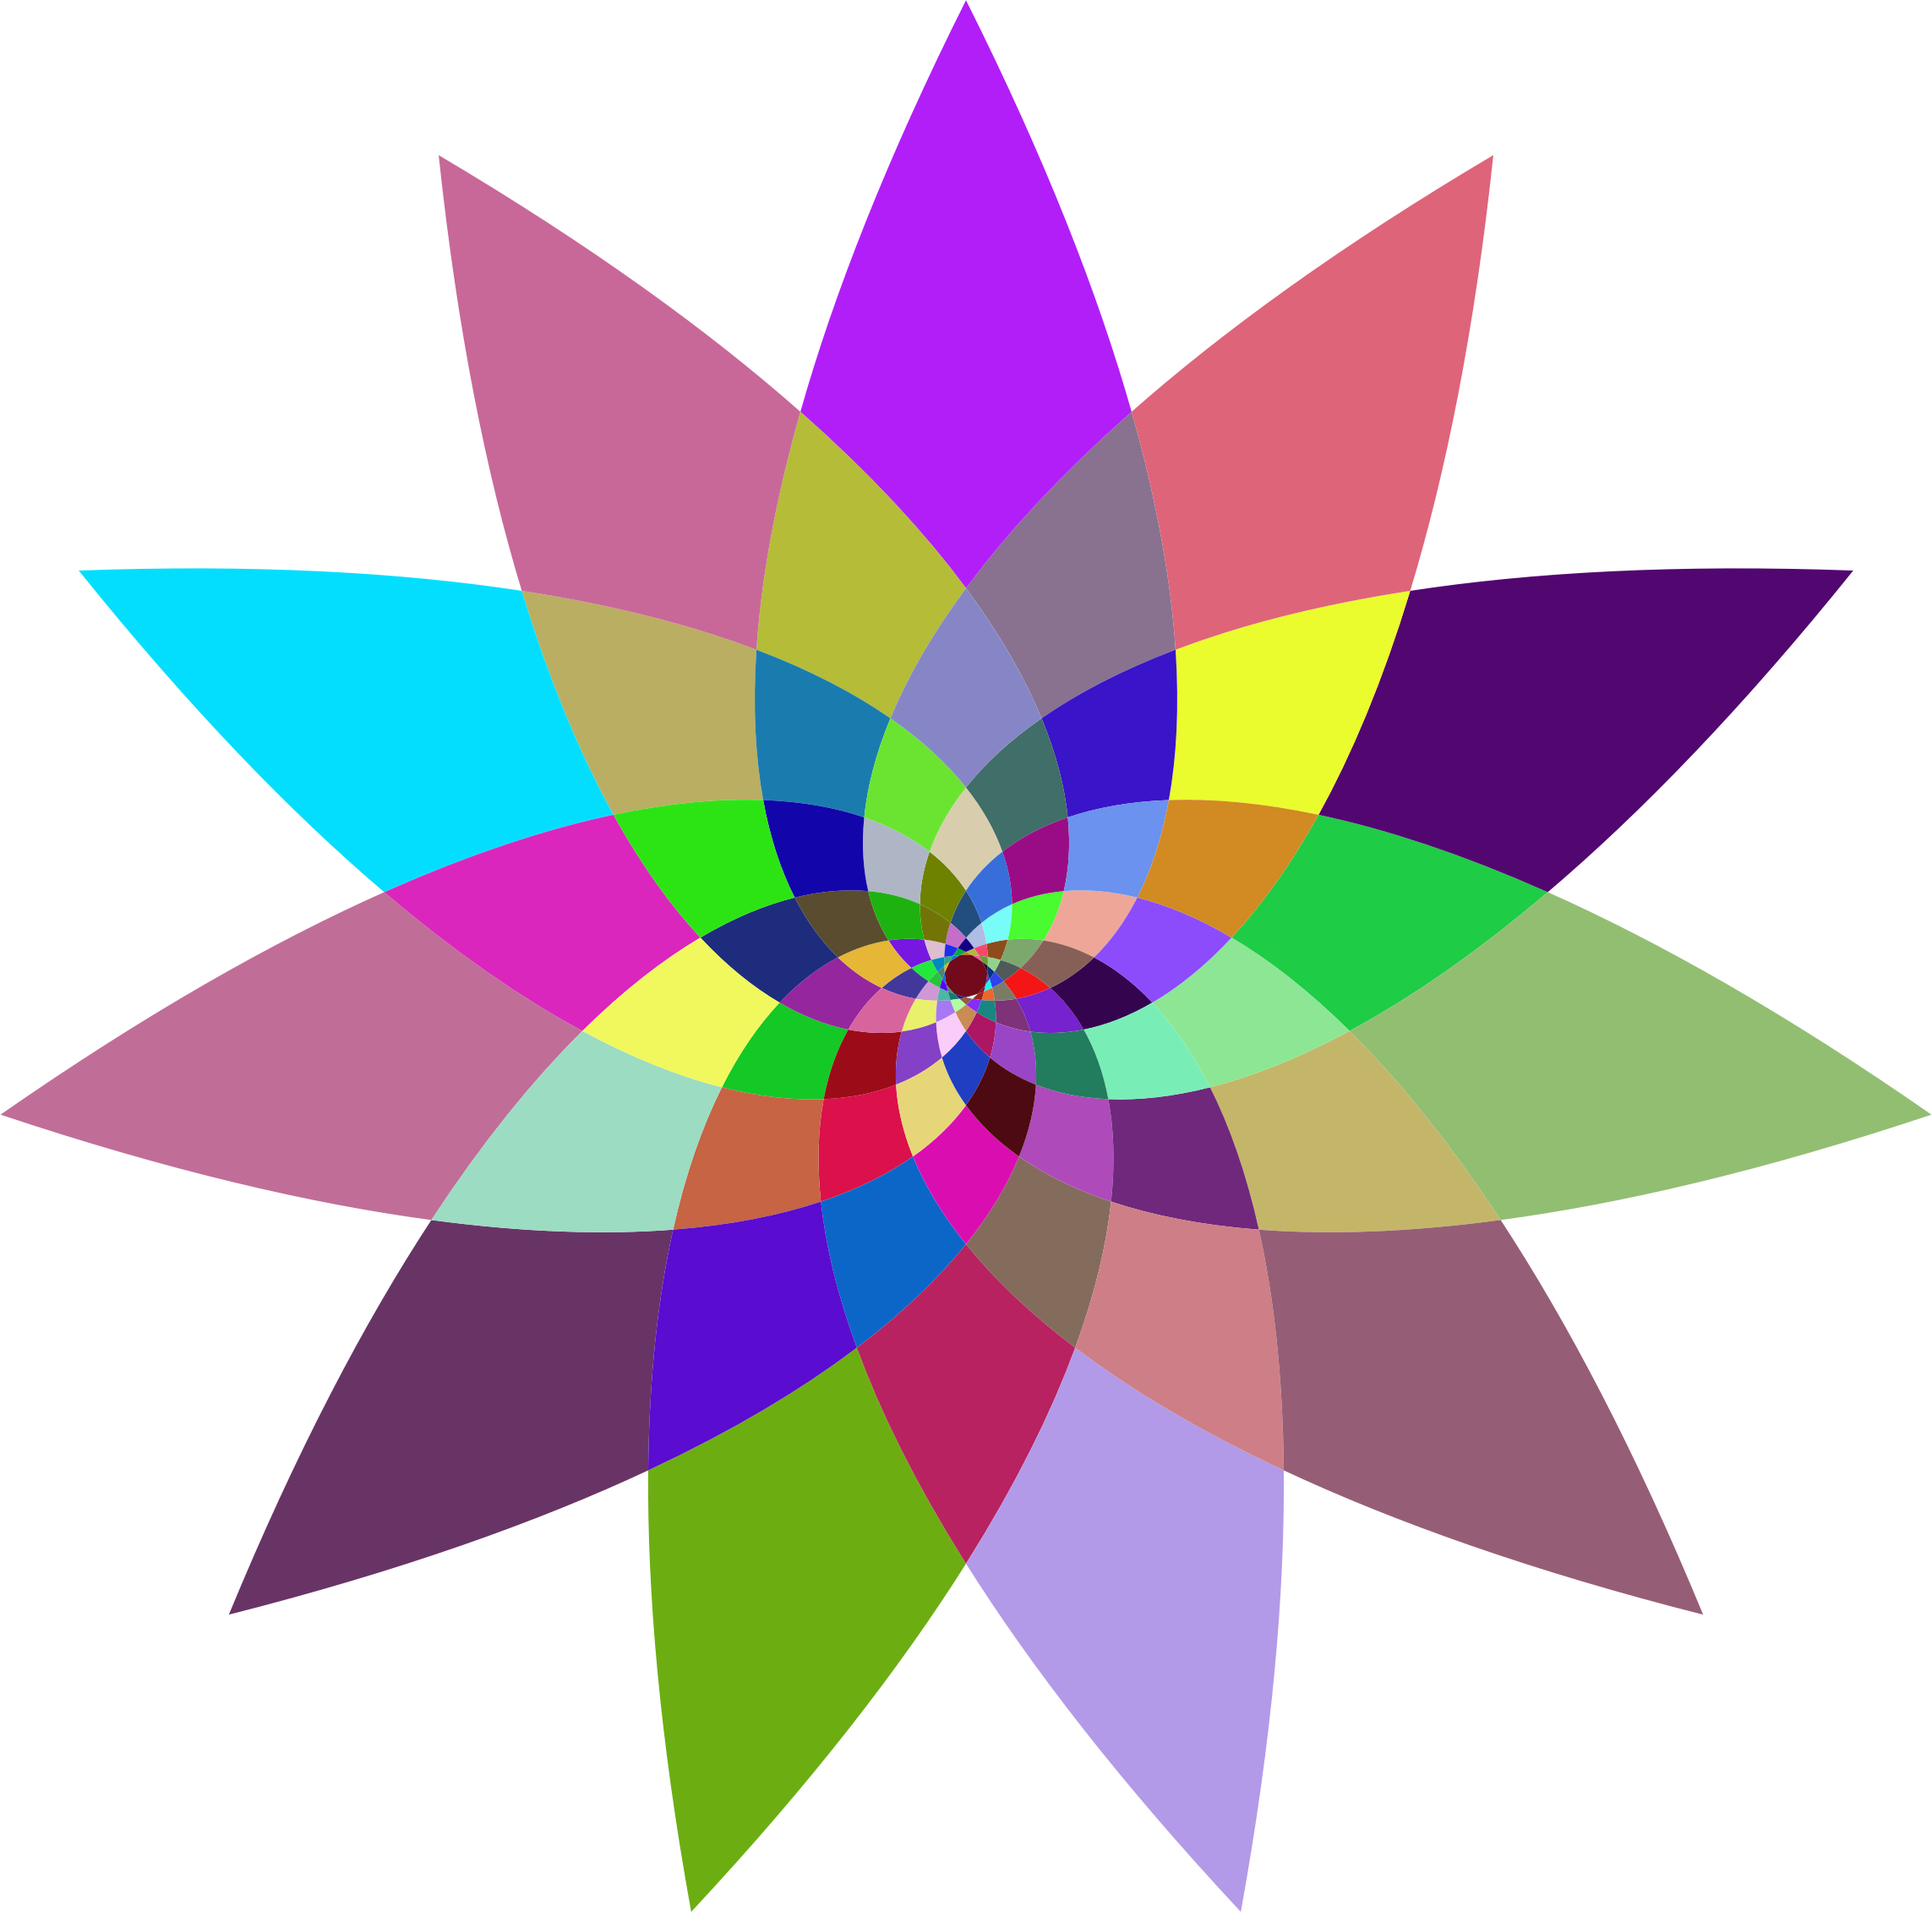 Art svg abstract. Prismatic flower line icons